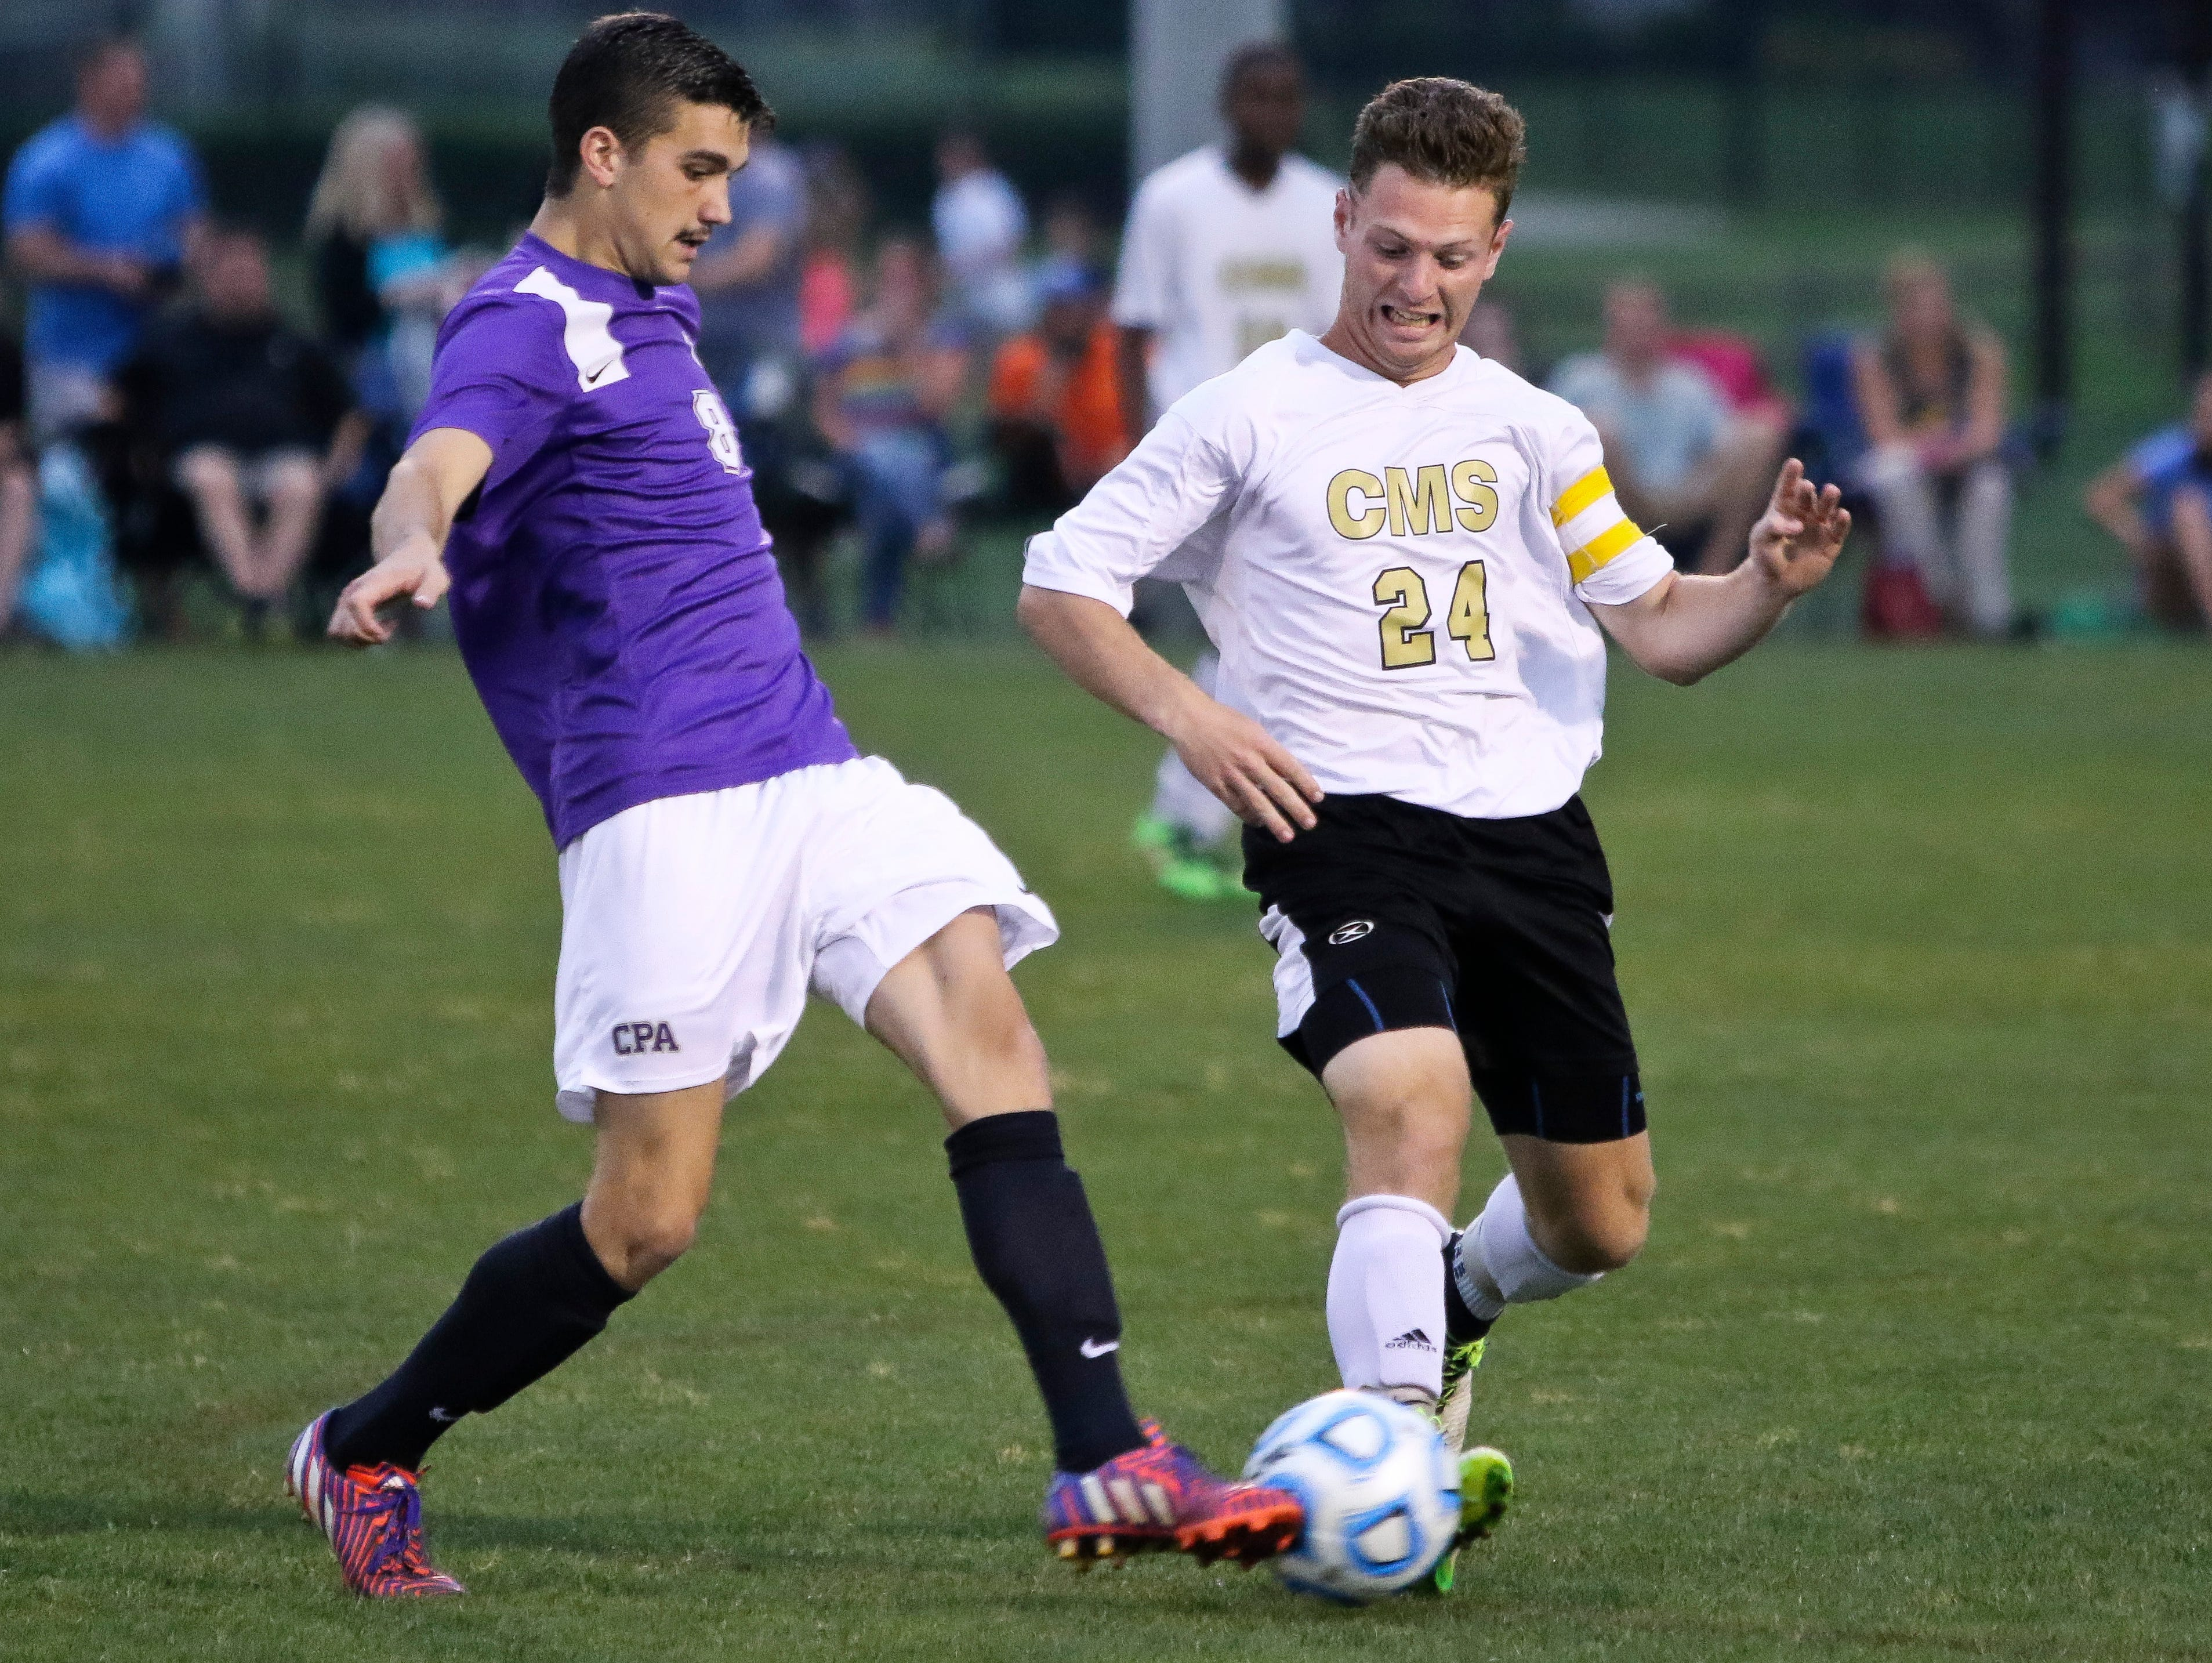 CPA's Harrison Myers and Central Magnet's Kyle Shoemaker battle for the battle early in their Wednesday night match at the Richard Siegel Soccer Complex.